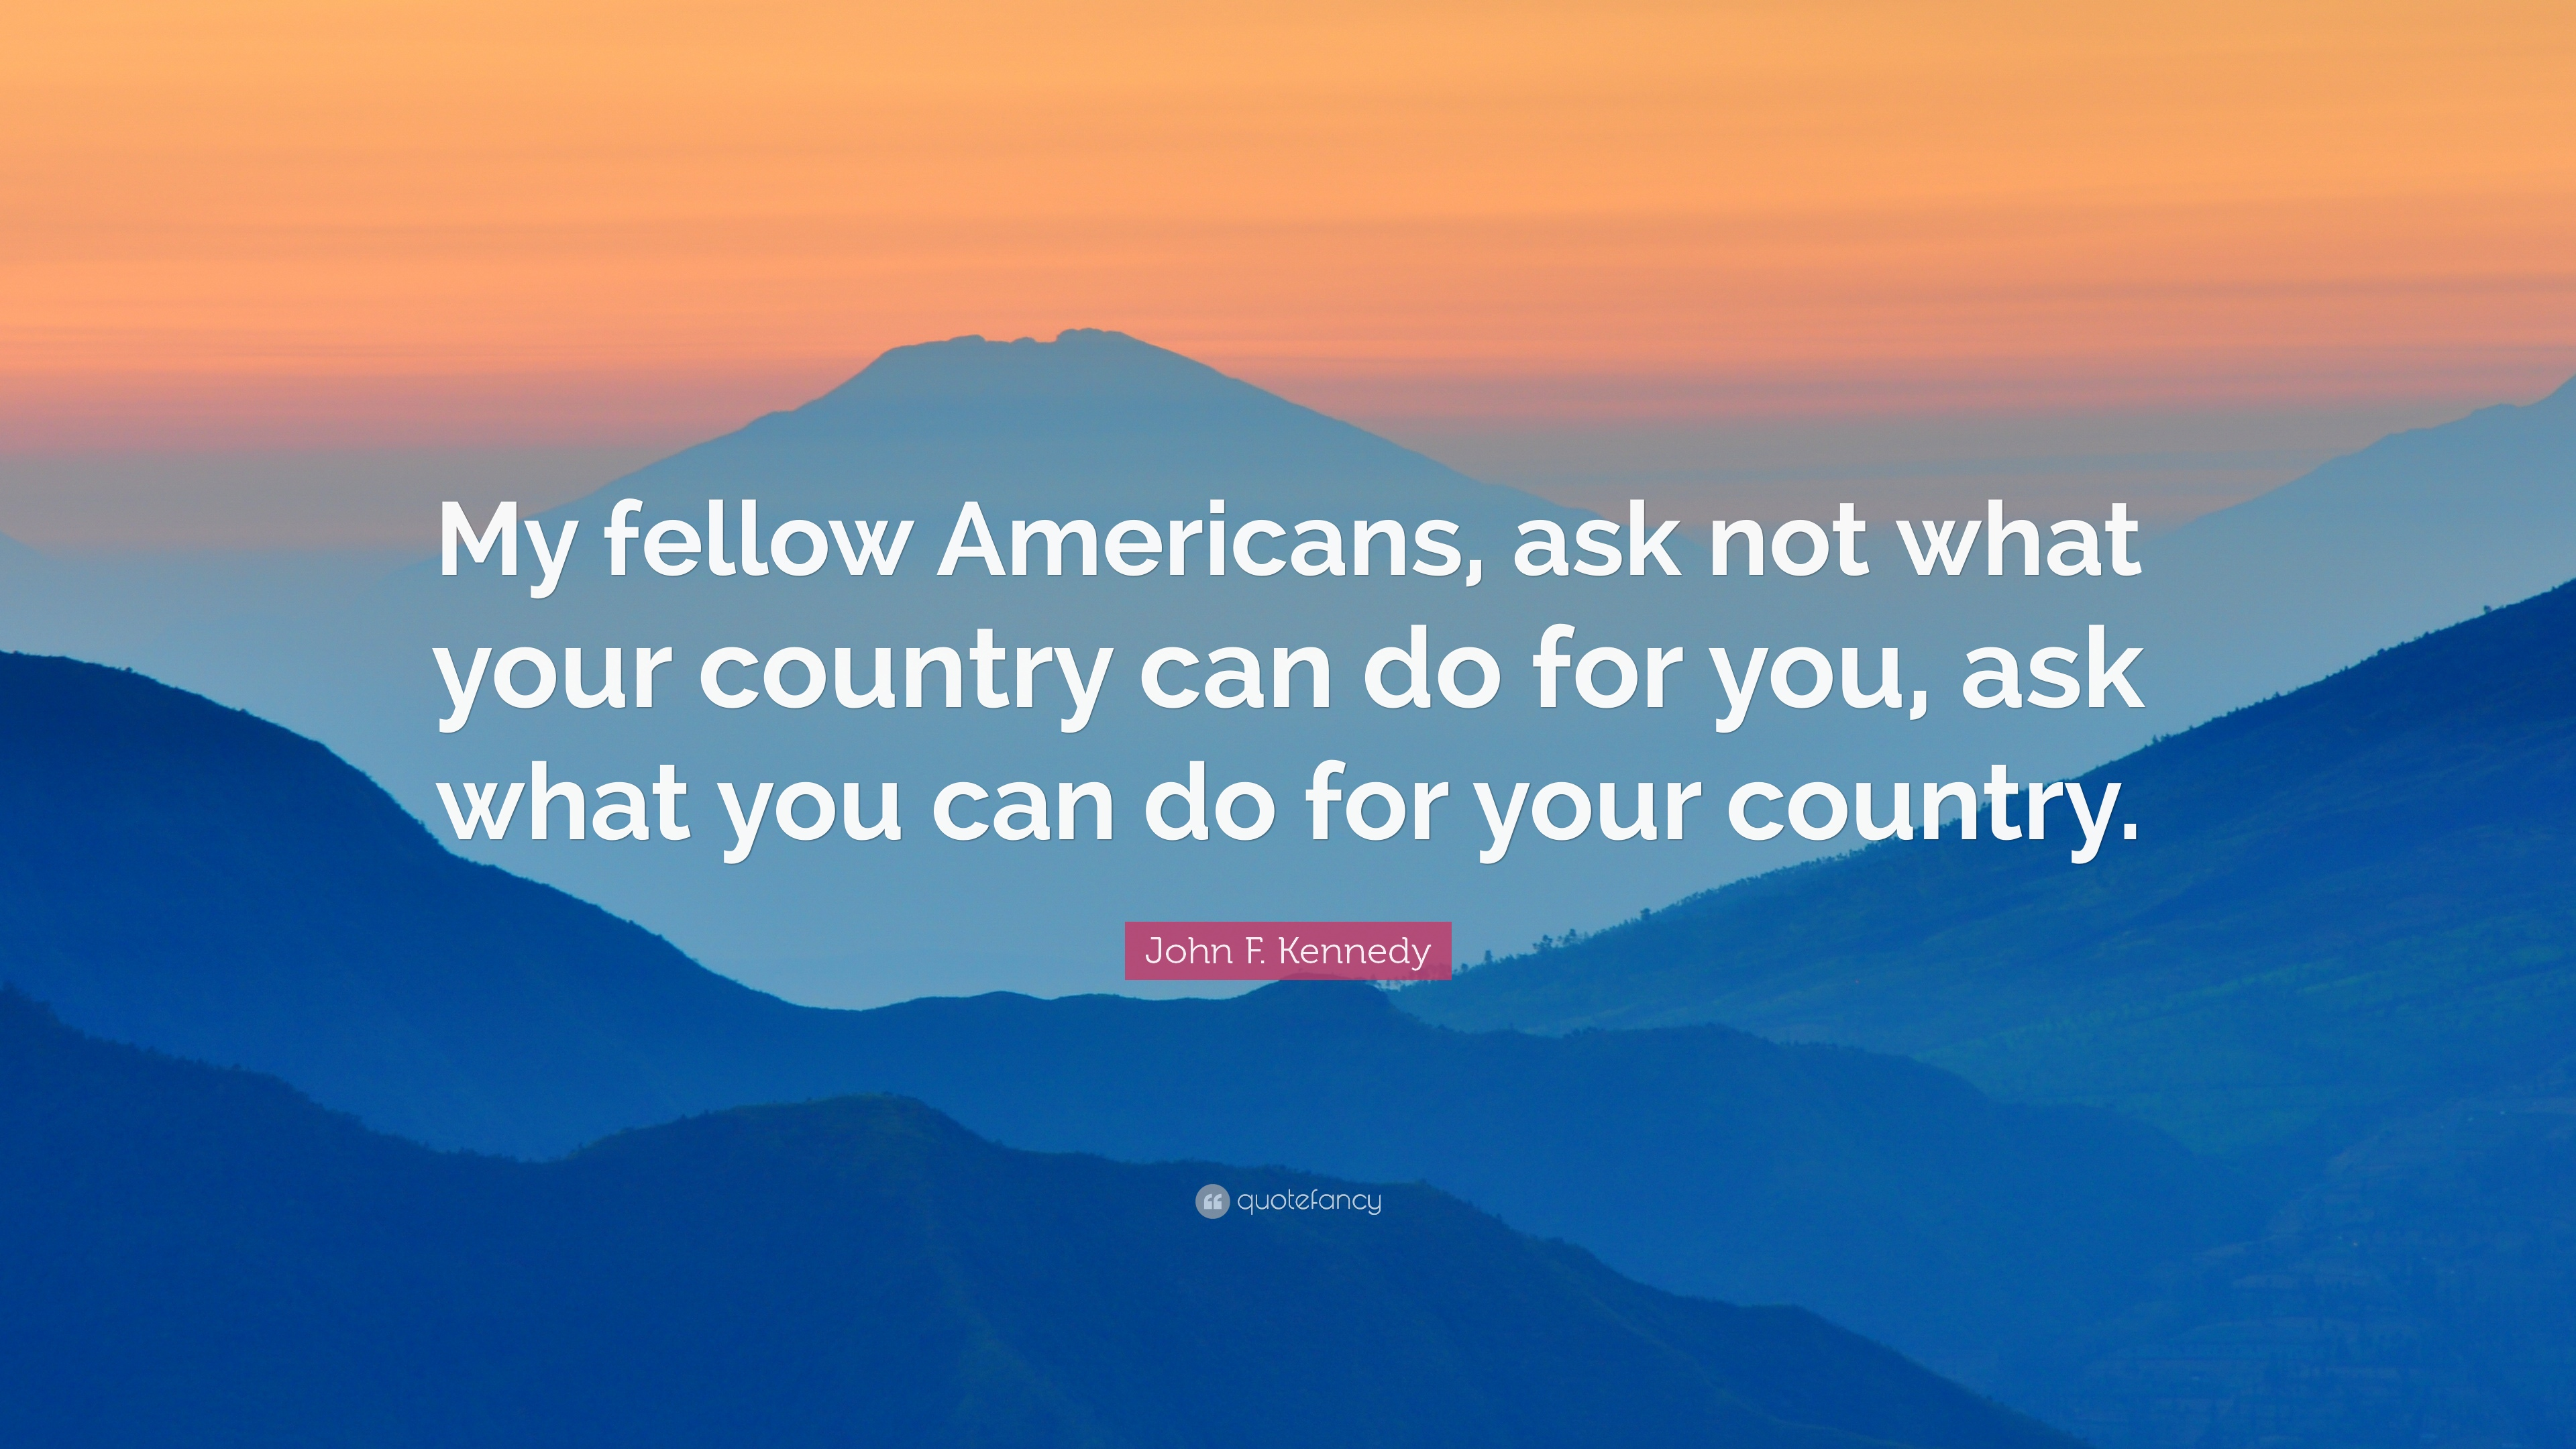 ask not what your country do for you